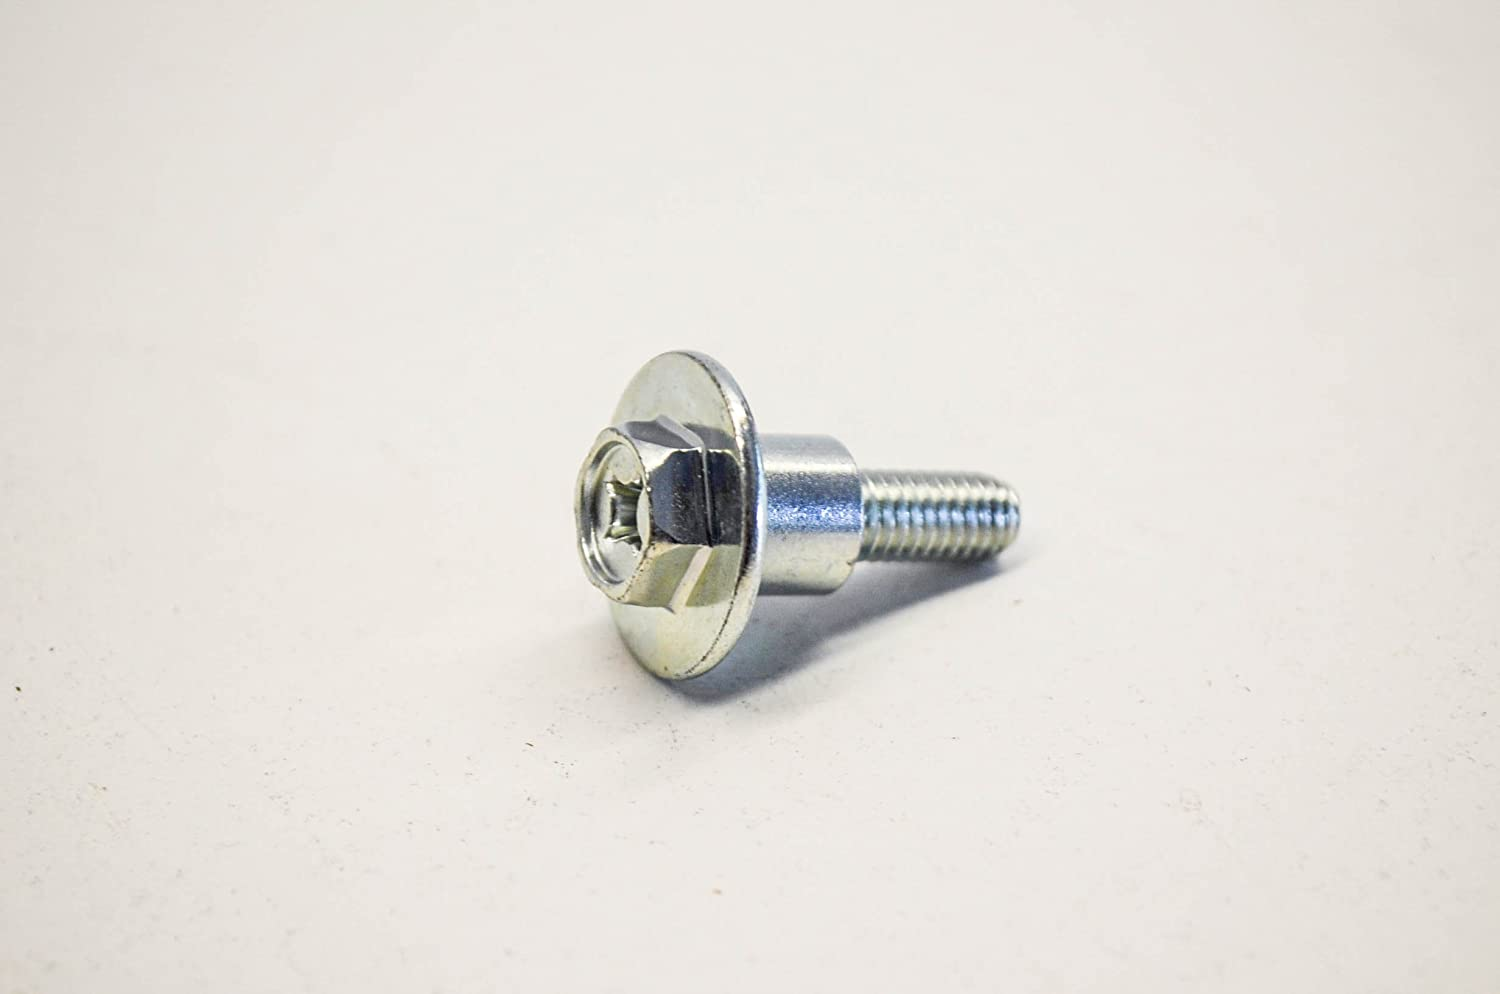 R/&GTail Tidy fender eliminator Honda CRF250L//M 13- for micro indicators with M8 thread